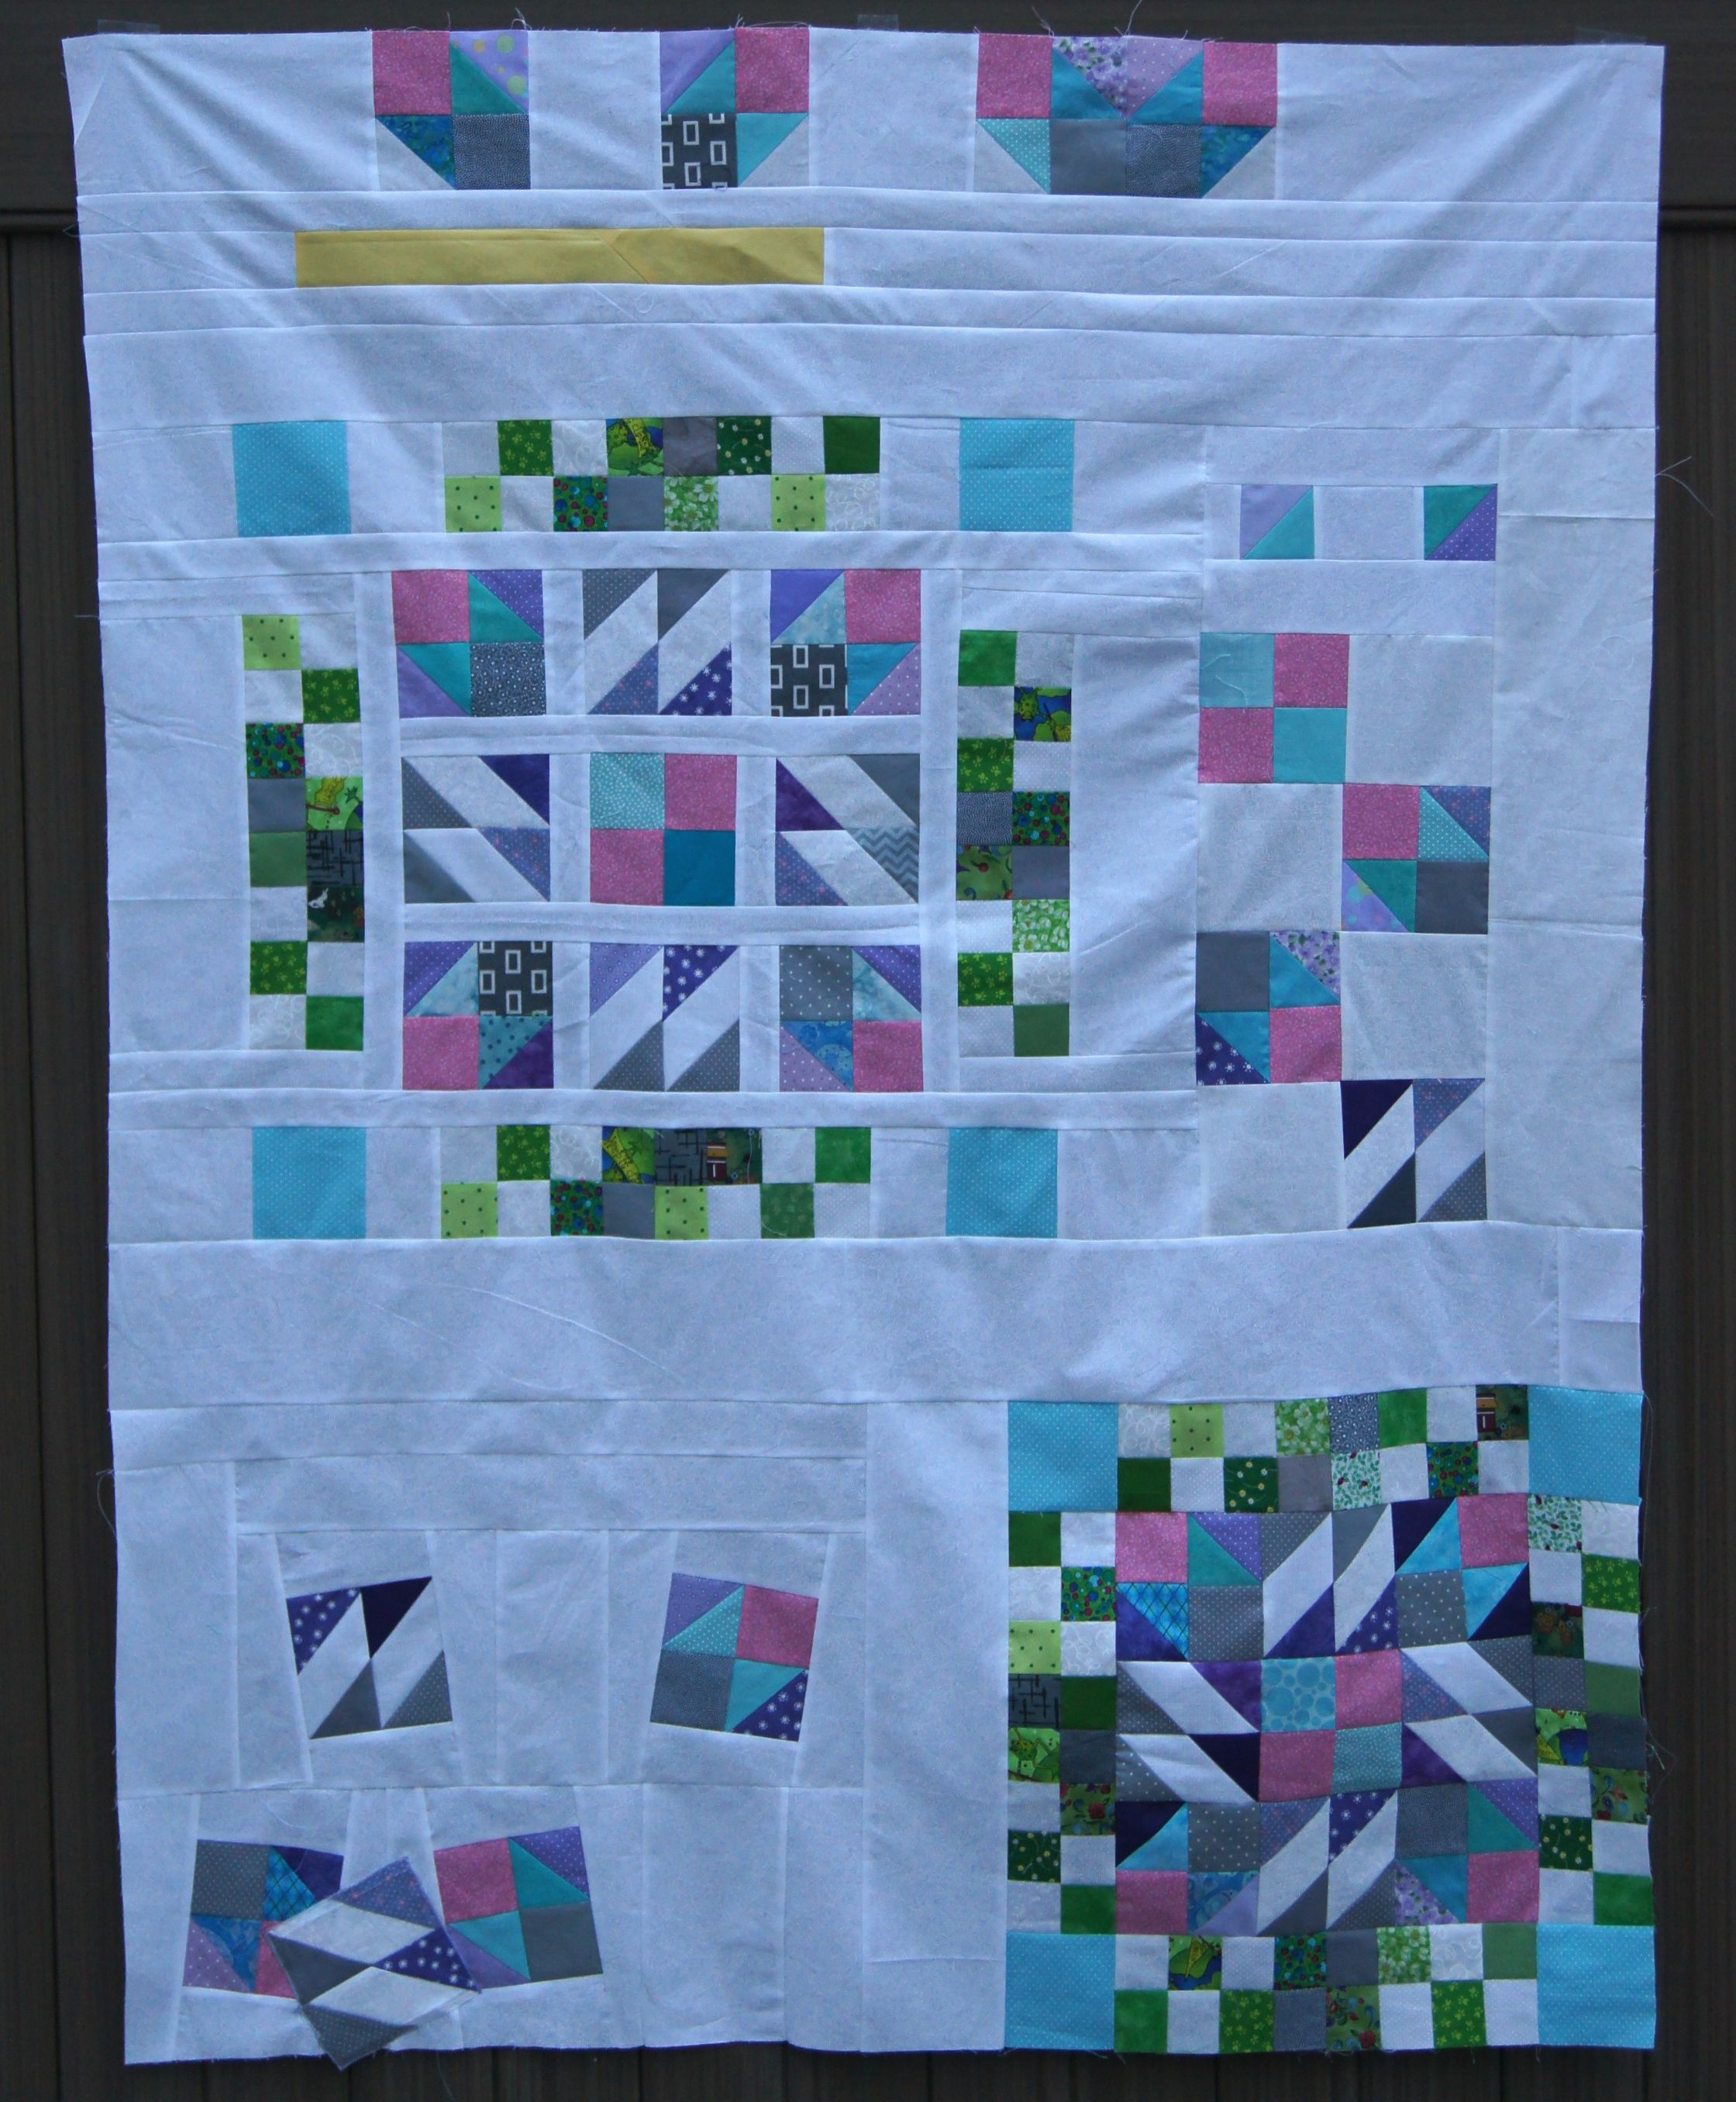 "Lap Quilt 41 x 55 1/2 inches ""Under Construction""  A Modern Take on Bonnie Hunter's Grand Illusion"